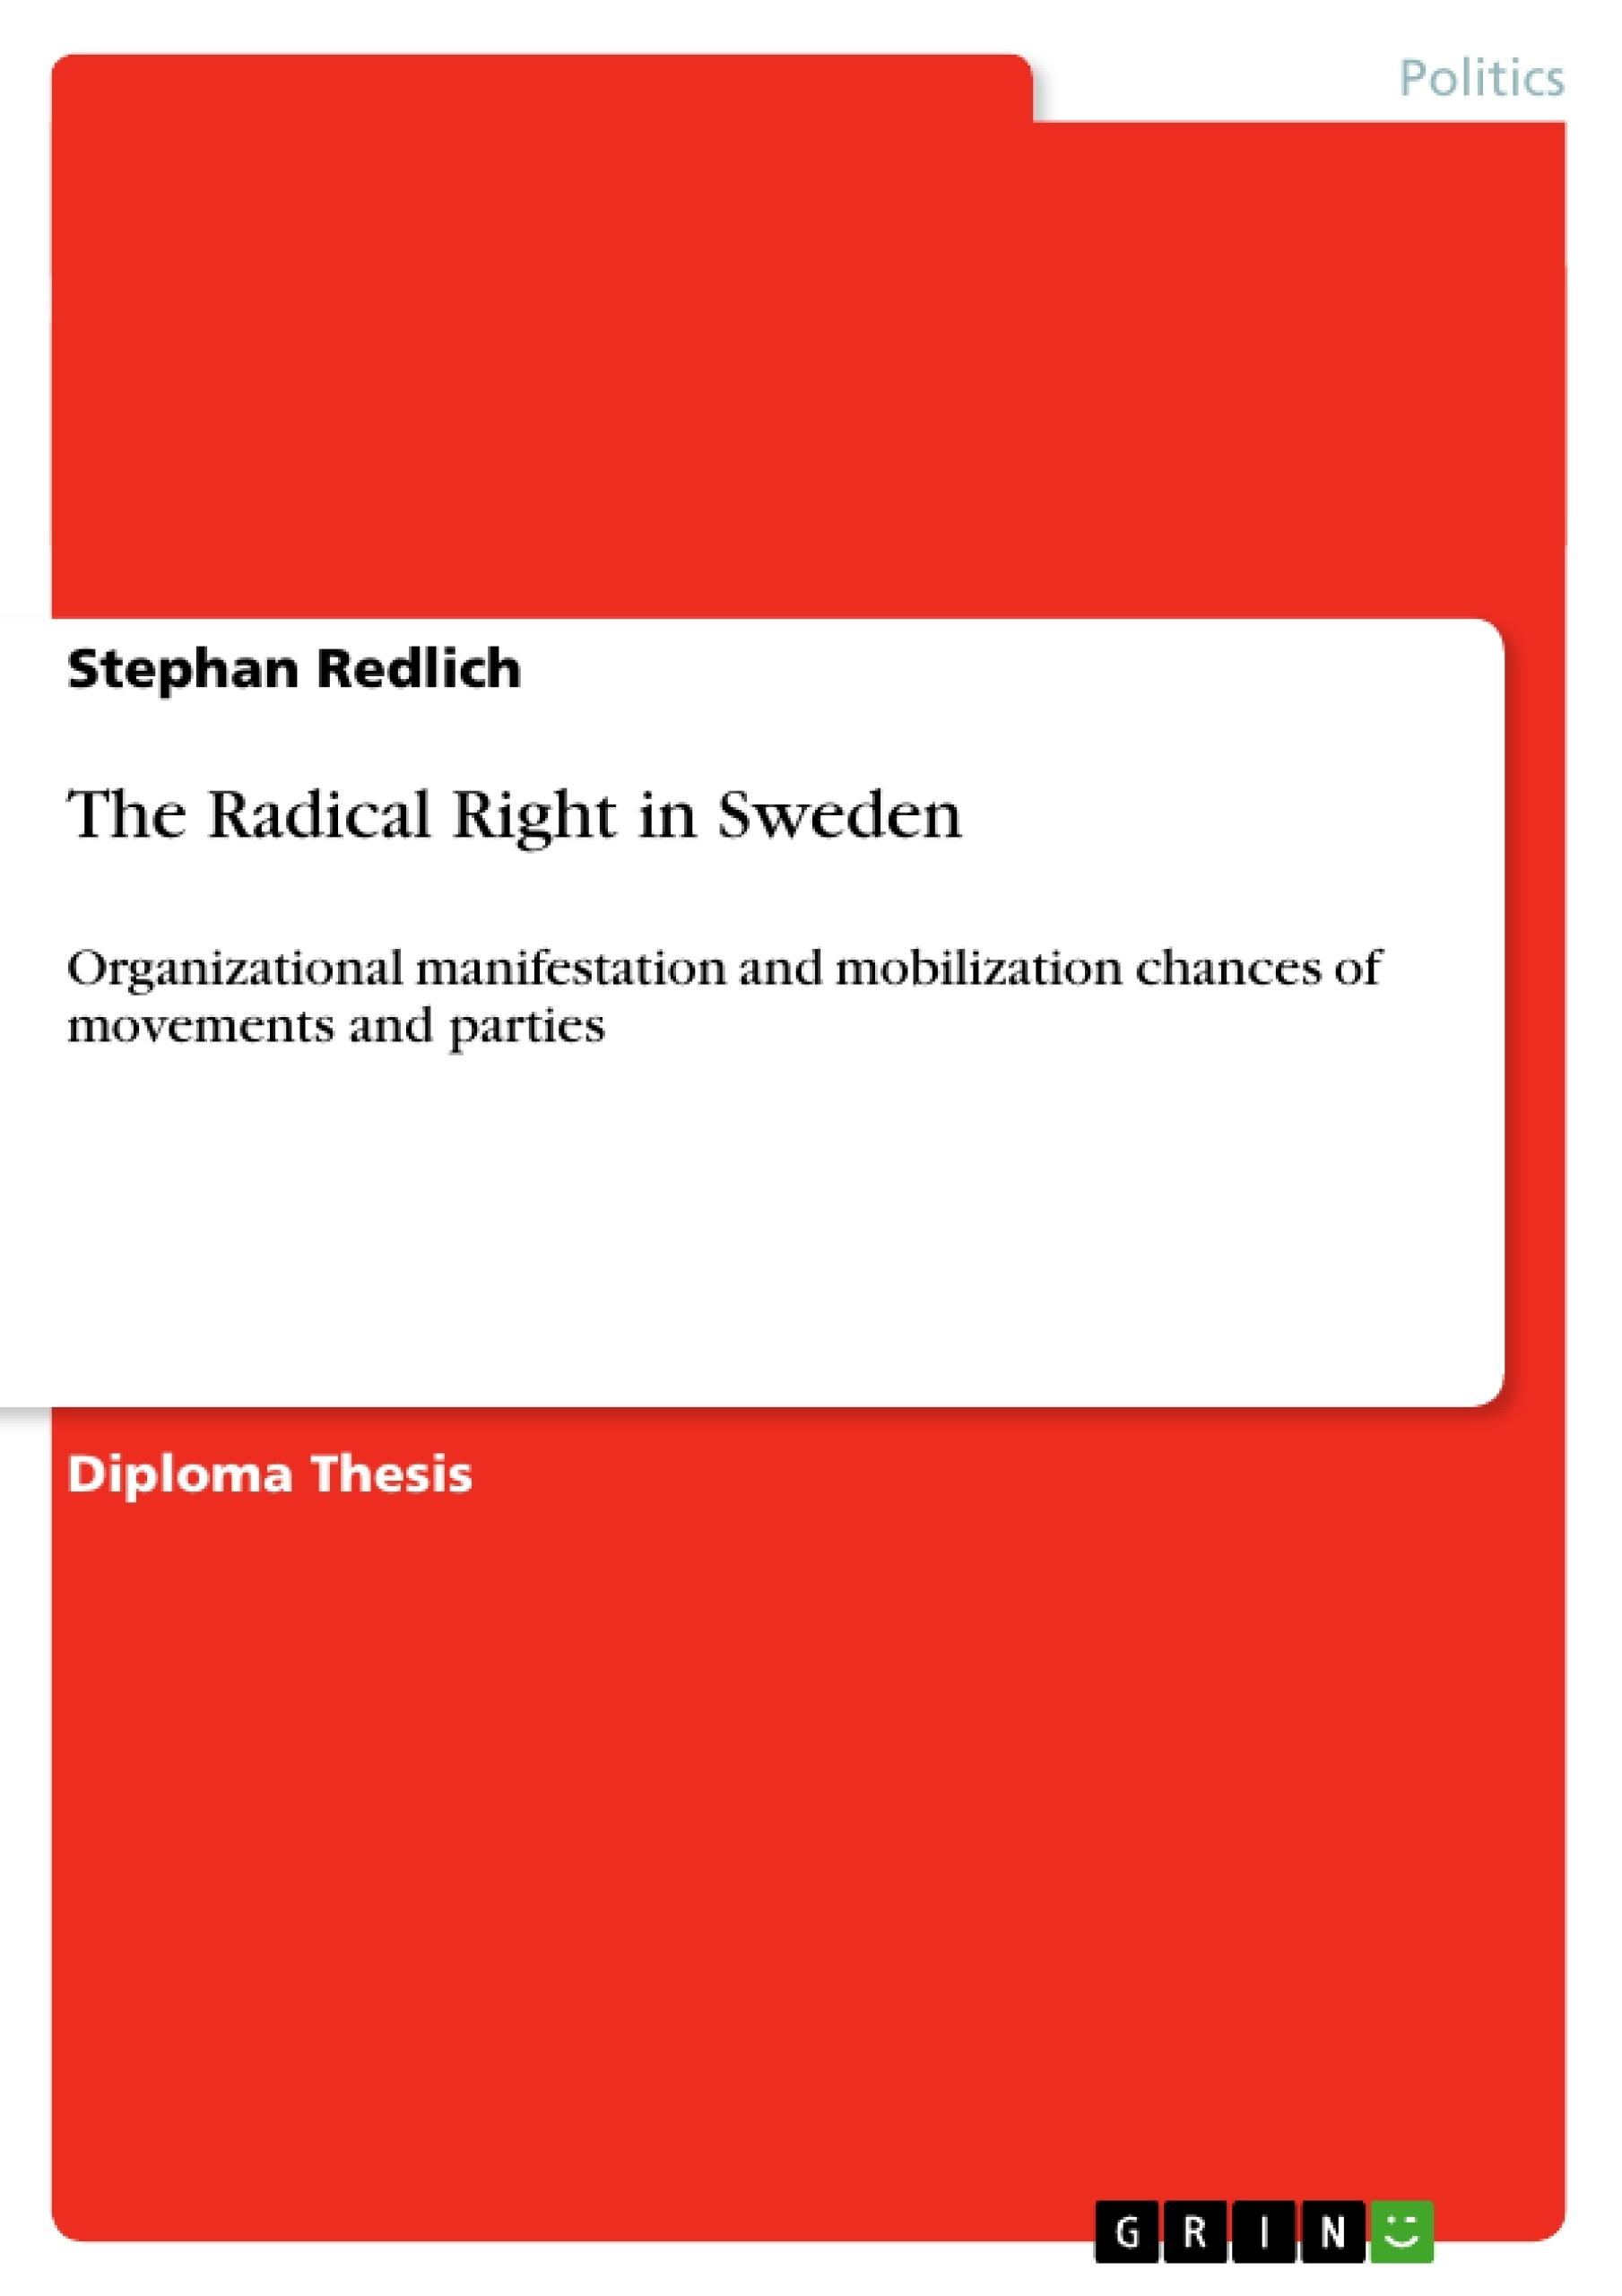 Title: The Radical Right in Sweden